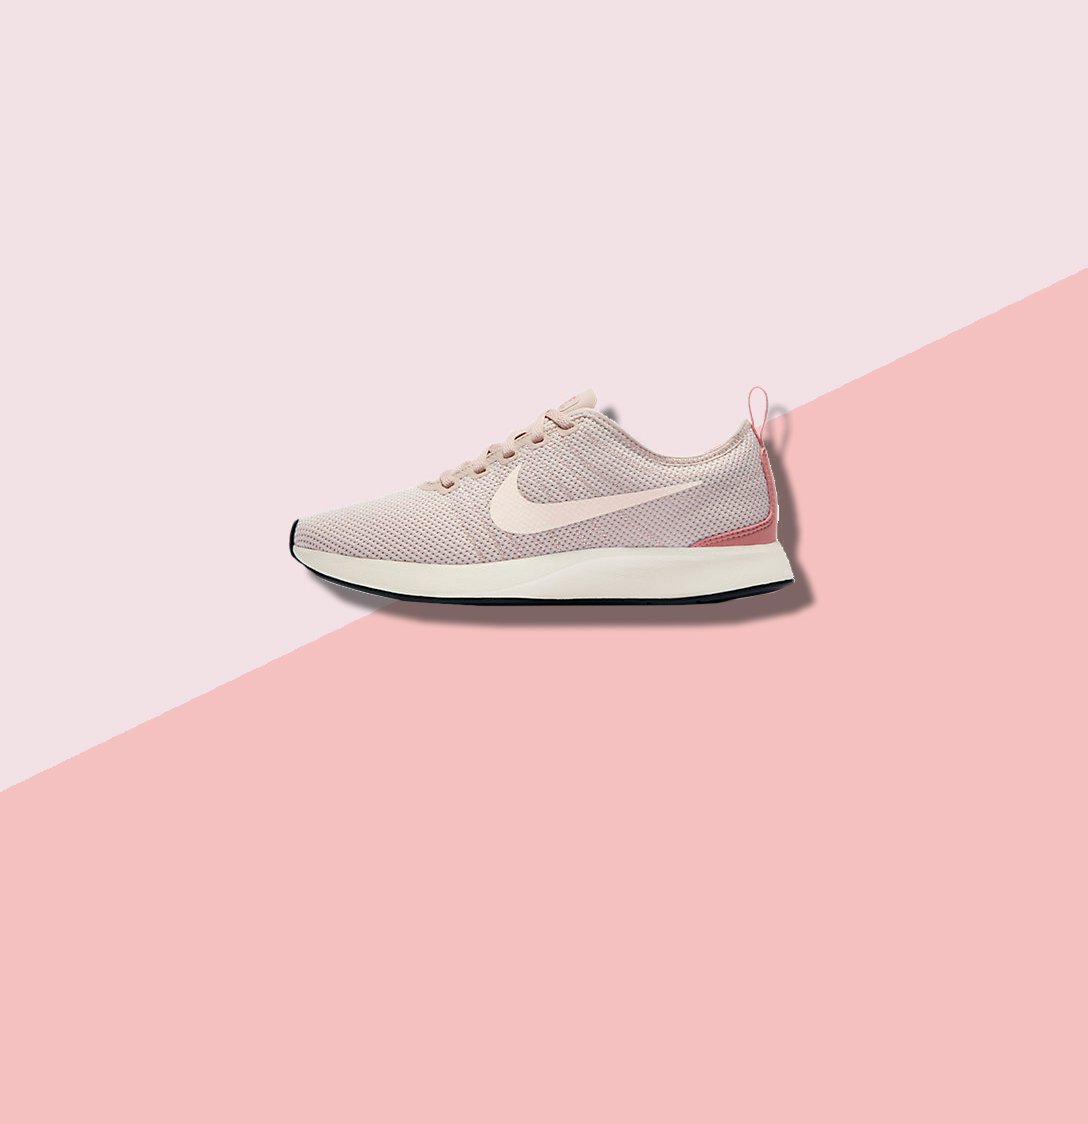 Nike's Millennial Pink Collection Is Here—and It's Amazing